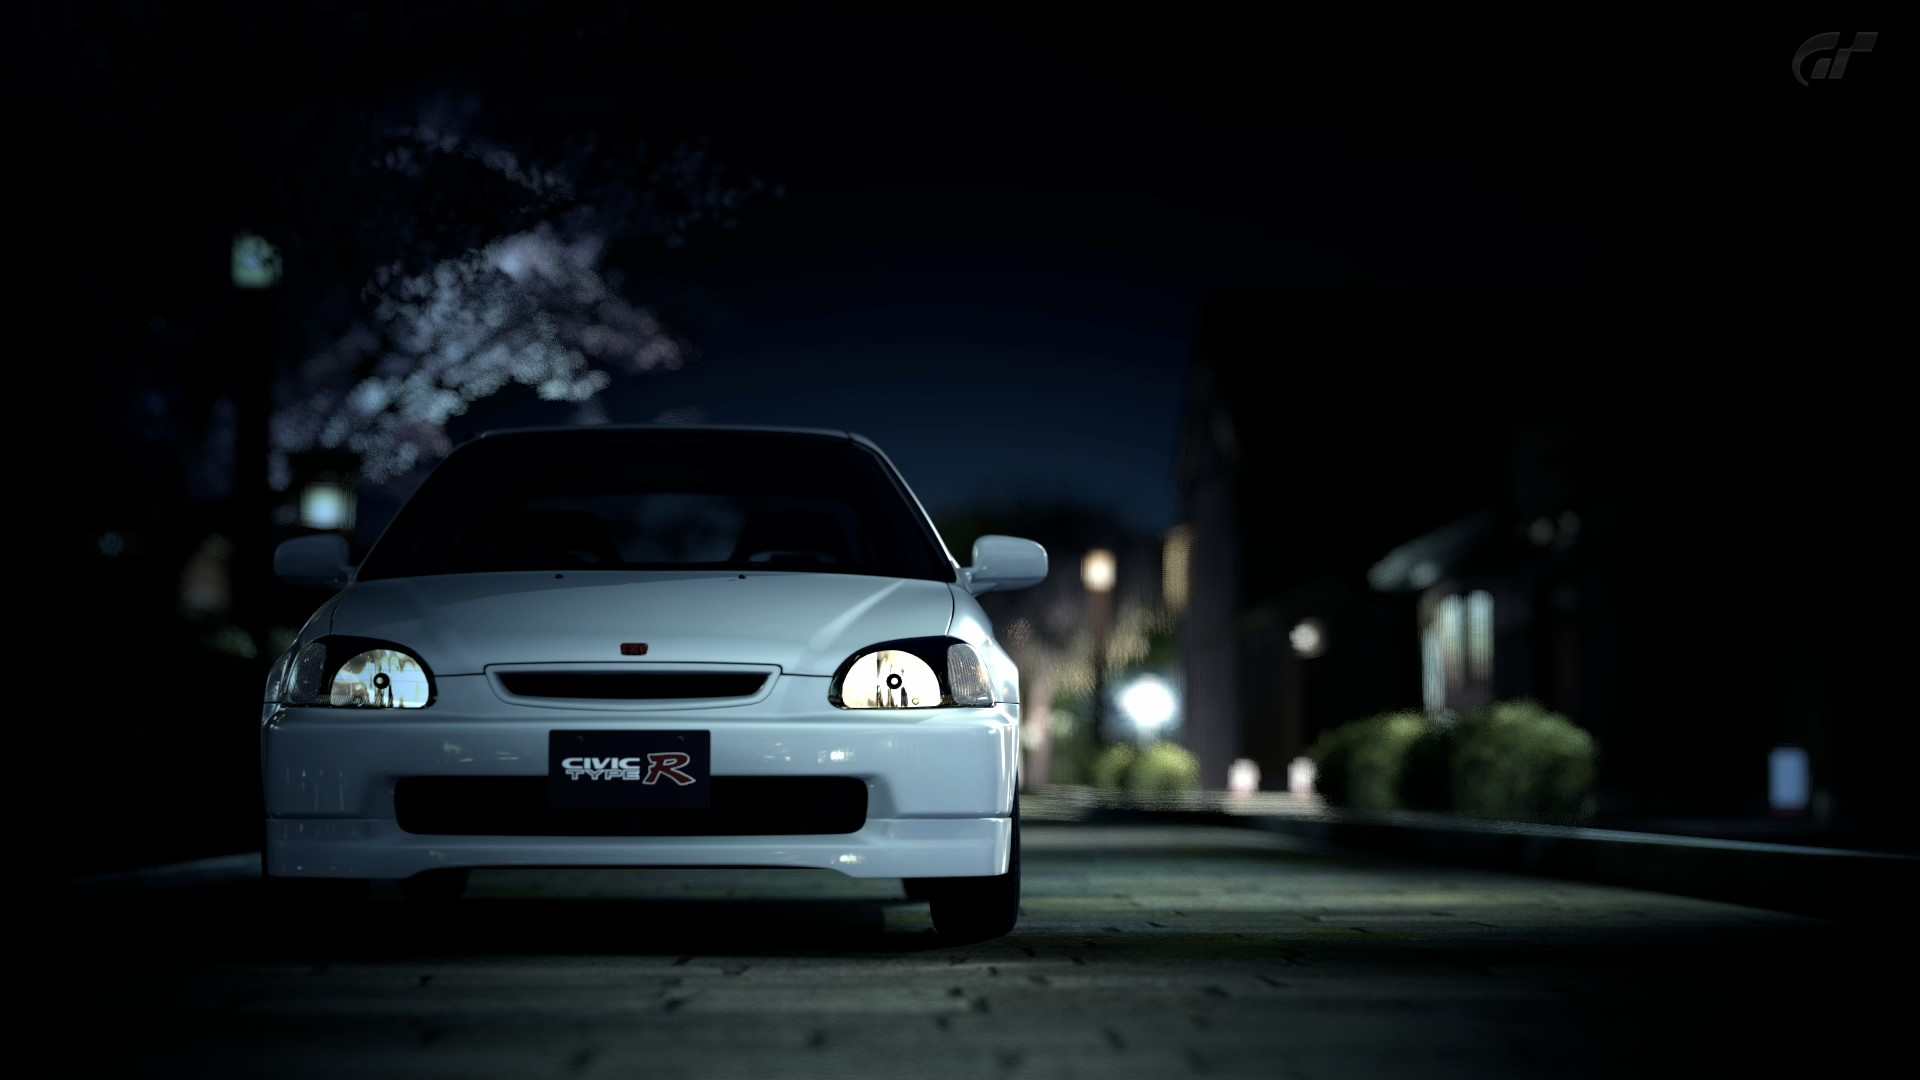 Honda Civic Wallpapers HD